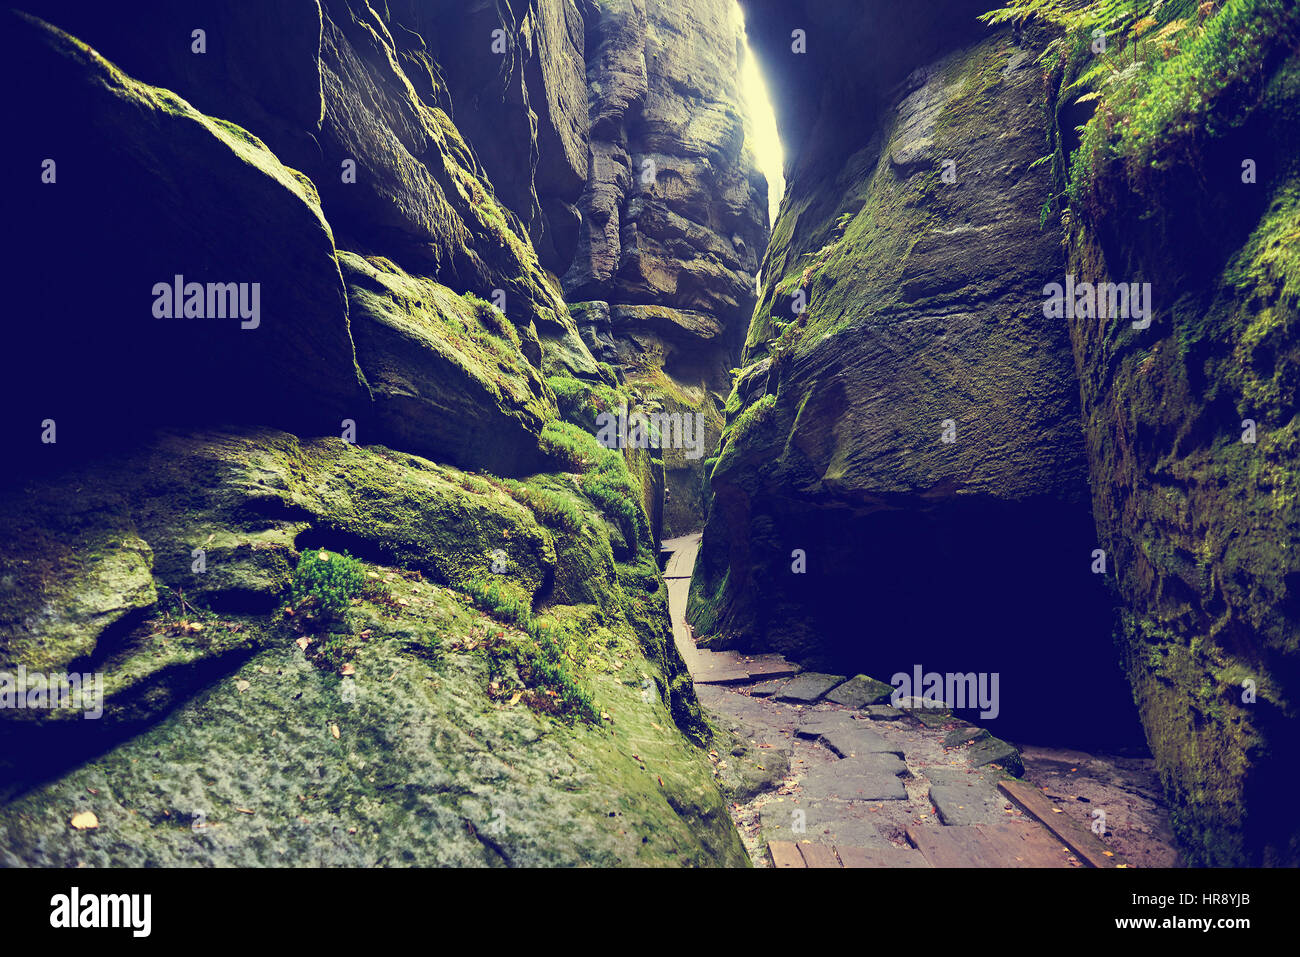 Fantastic view of the green canyon Siberia. Teplice-Adrspach Rock Town. Czech Republic. Artistic picture. Beauty - Stock Image